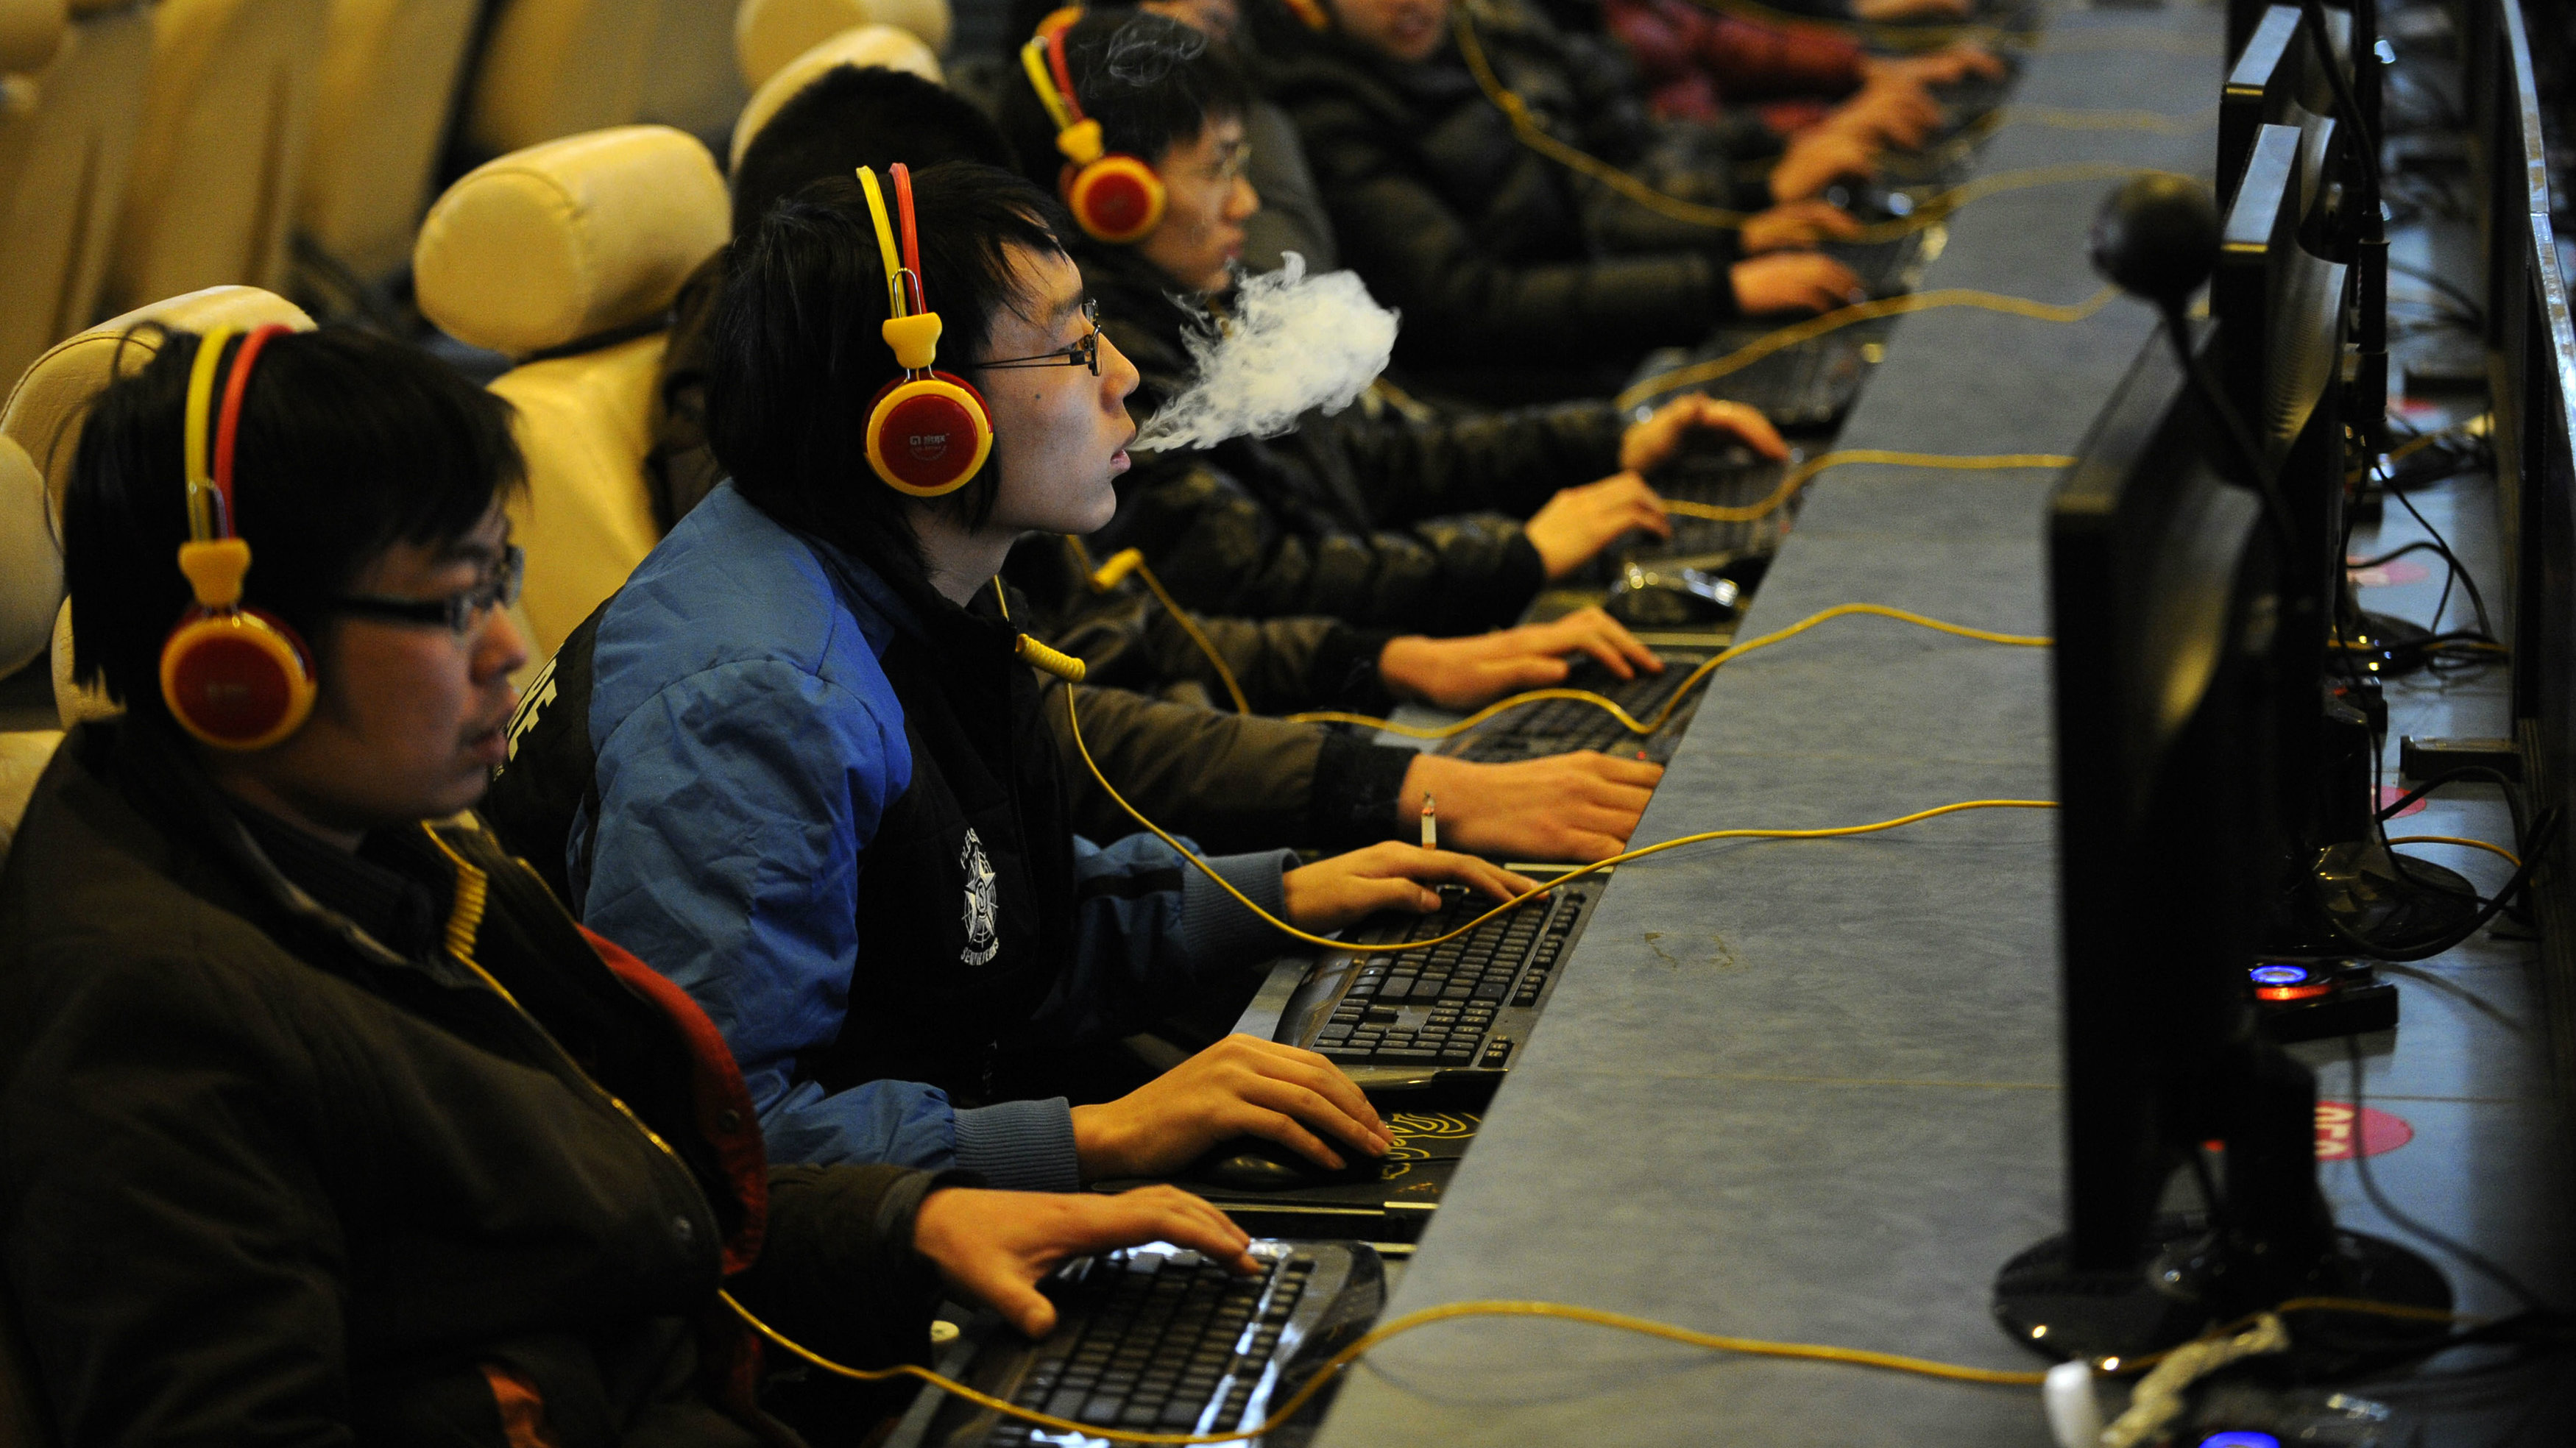 Online video games are the latest casualty of China's